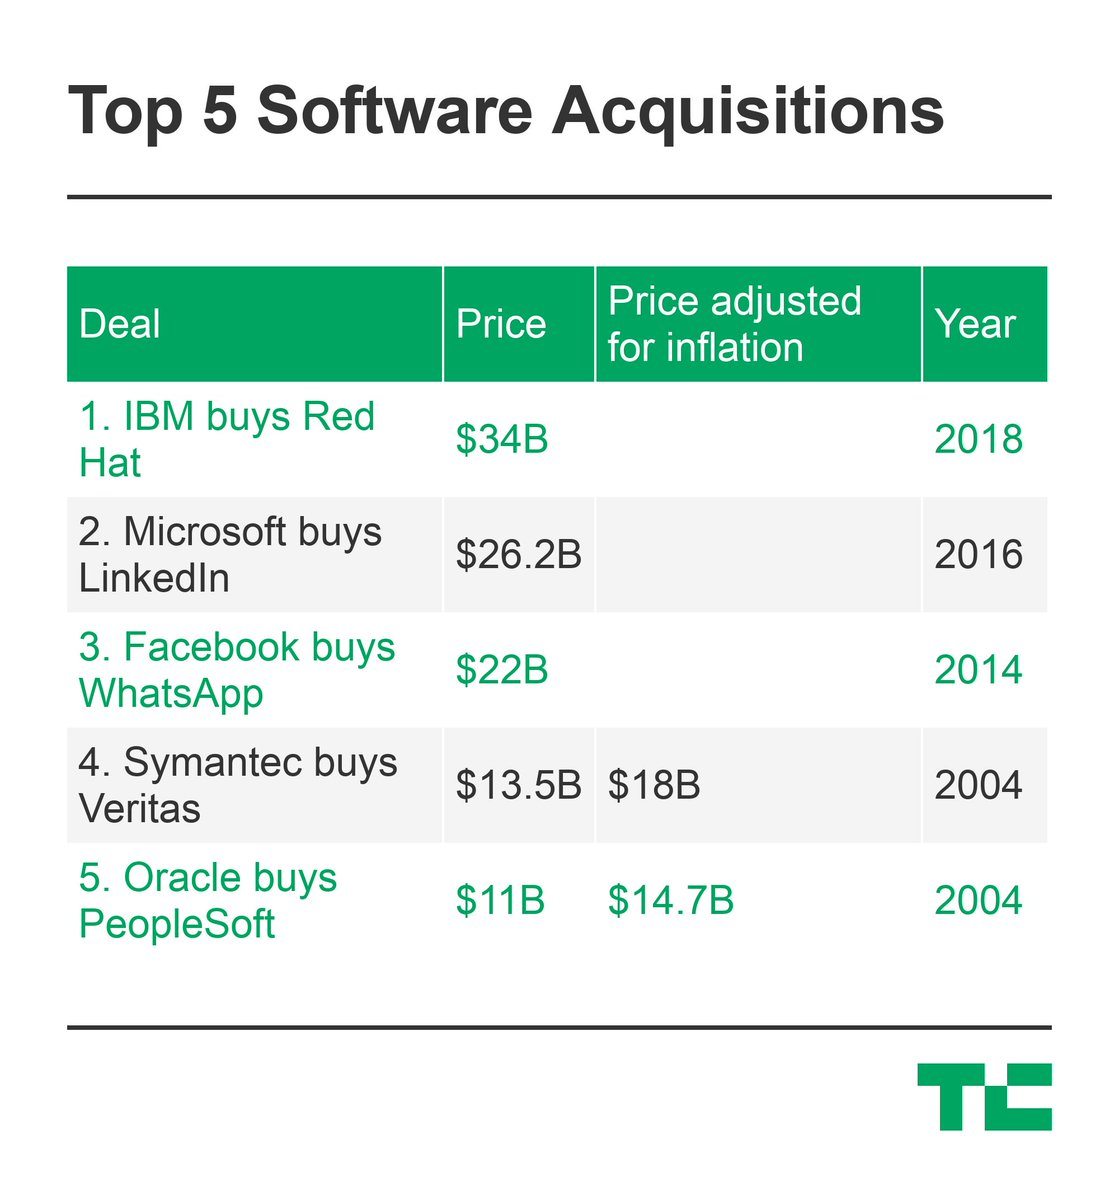 How IBM's massive $34B acquisition of Red Hat stacks up against history's largest M&As